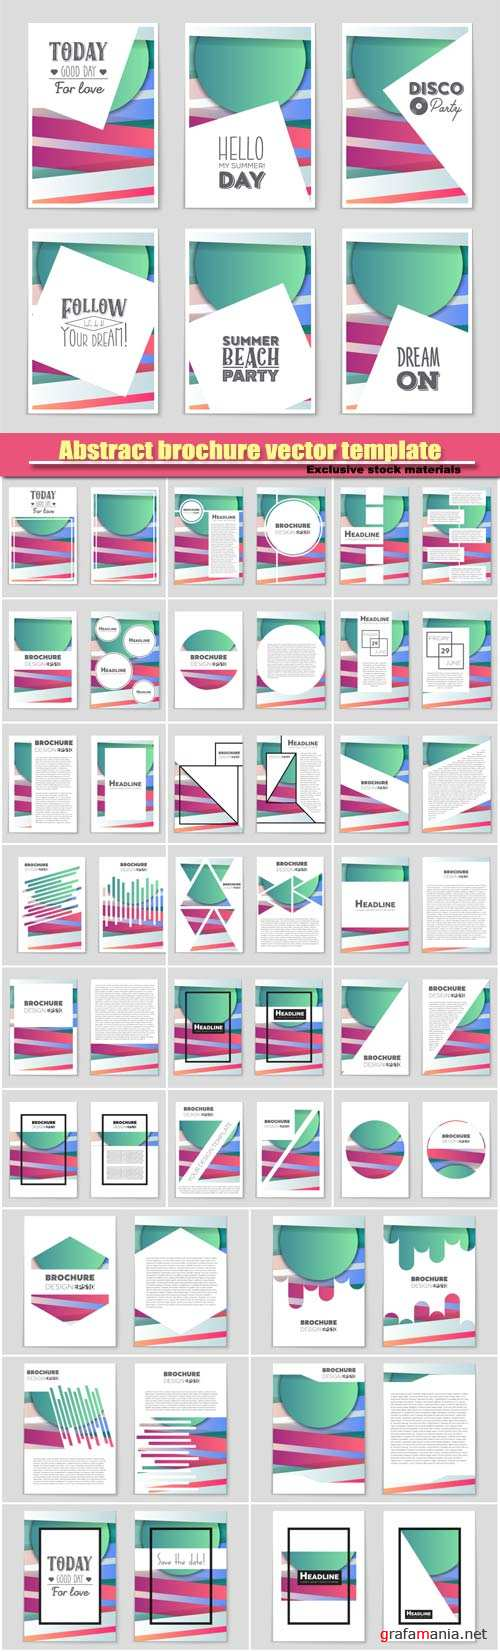 Abstract brochure vector template, design layout background set